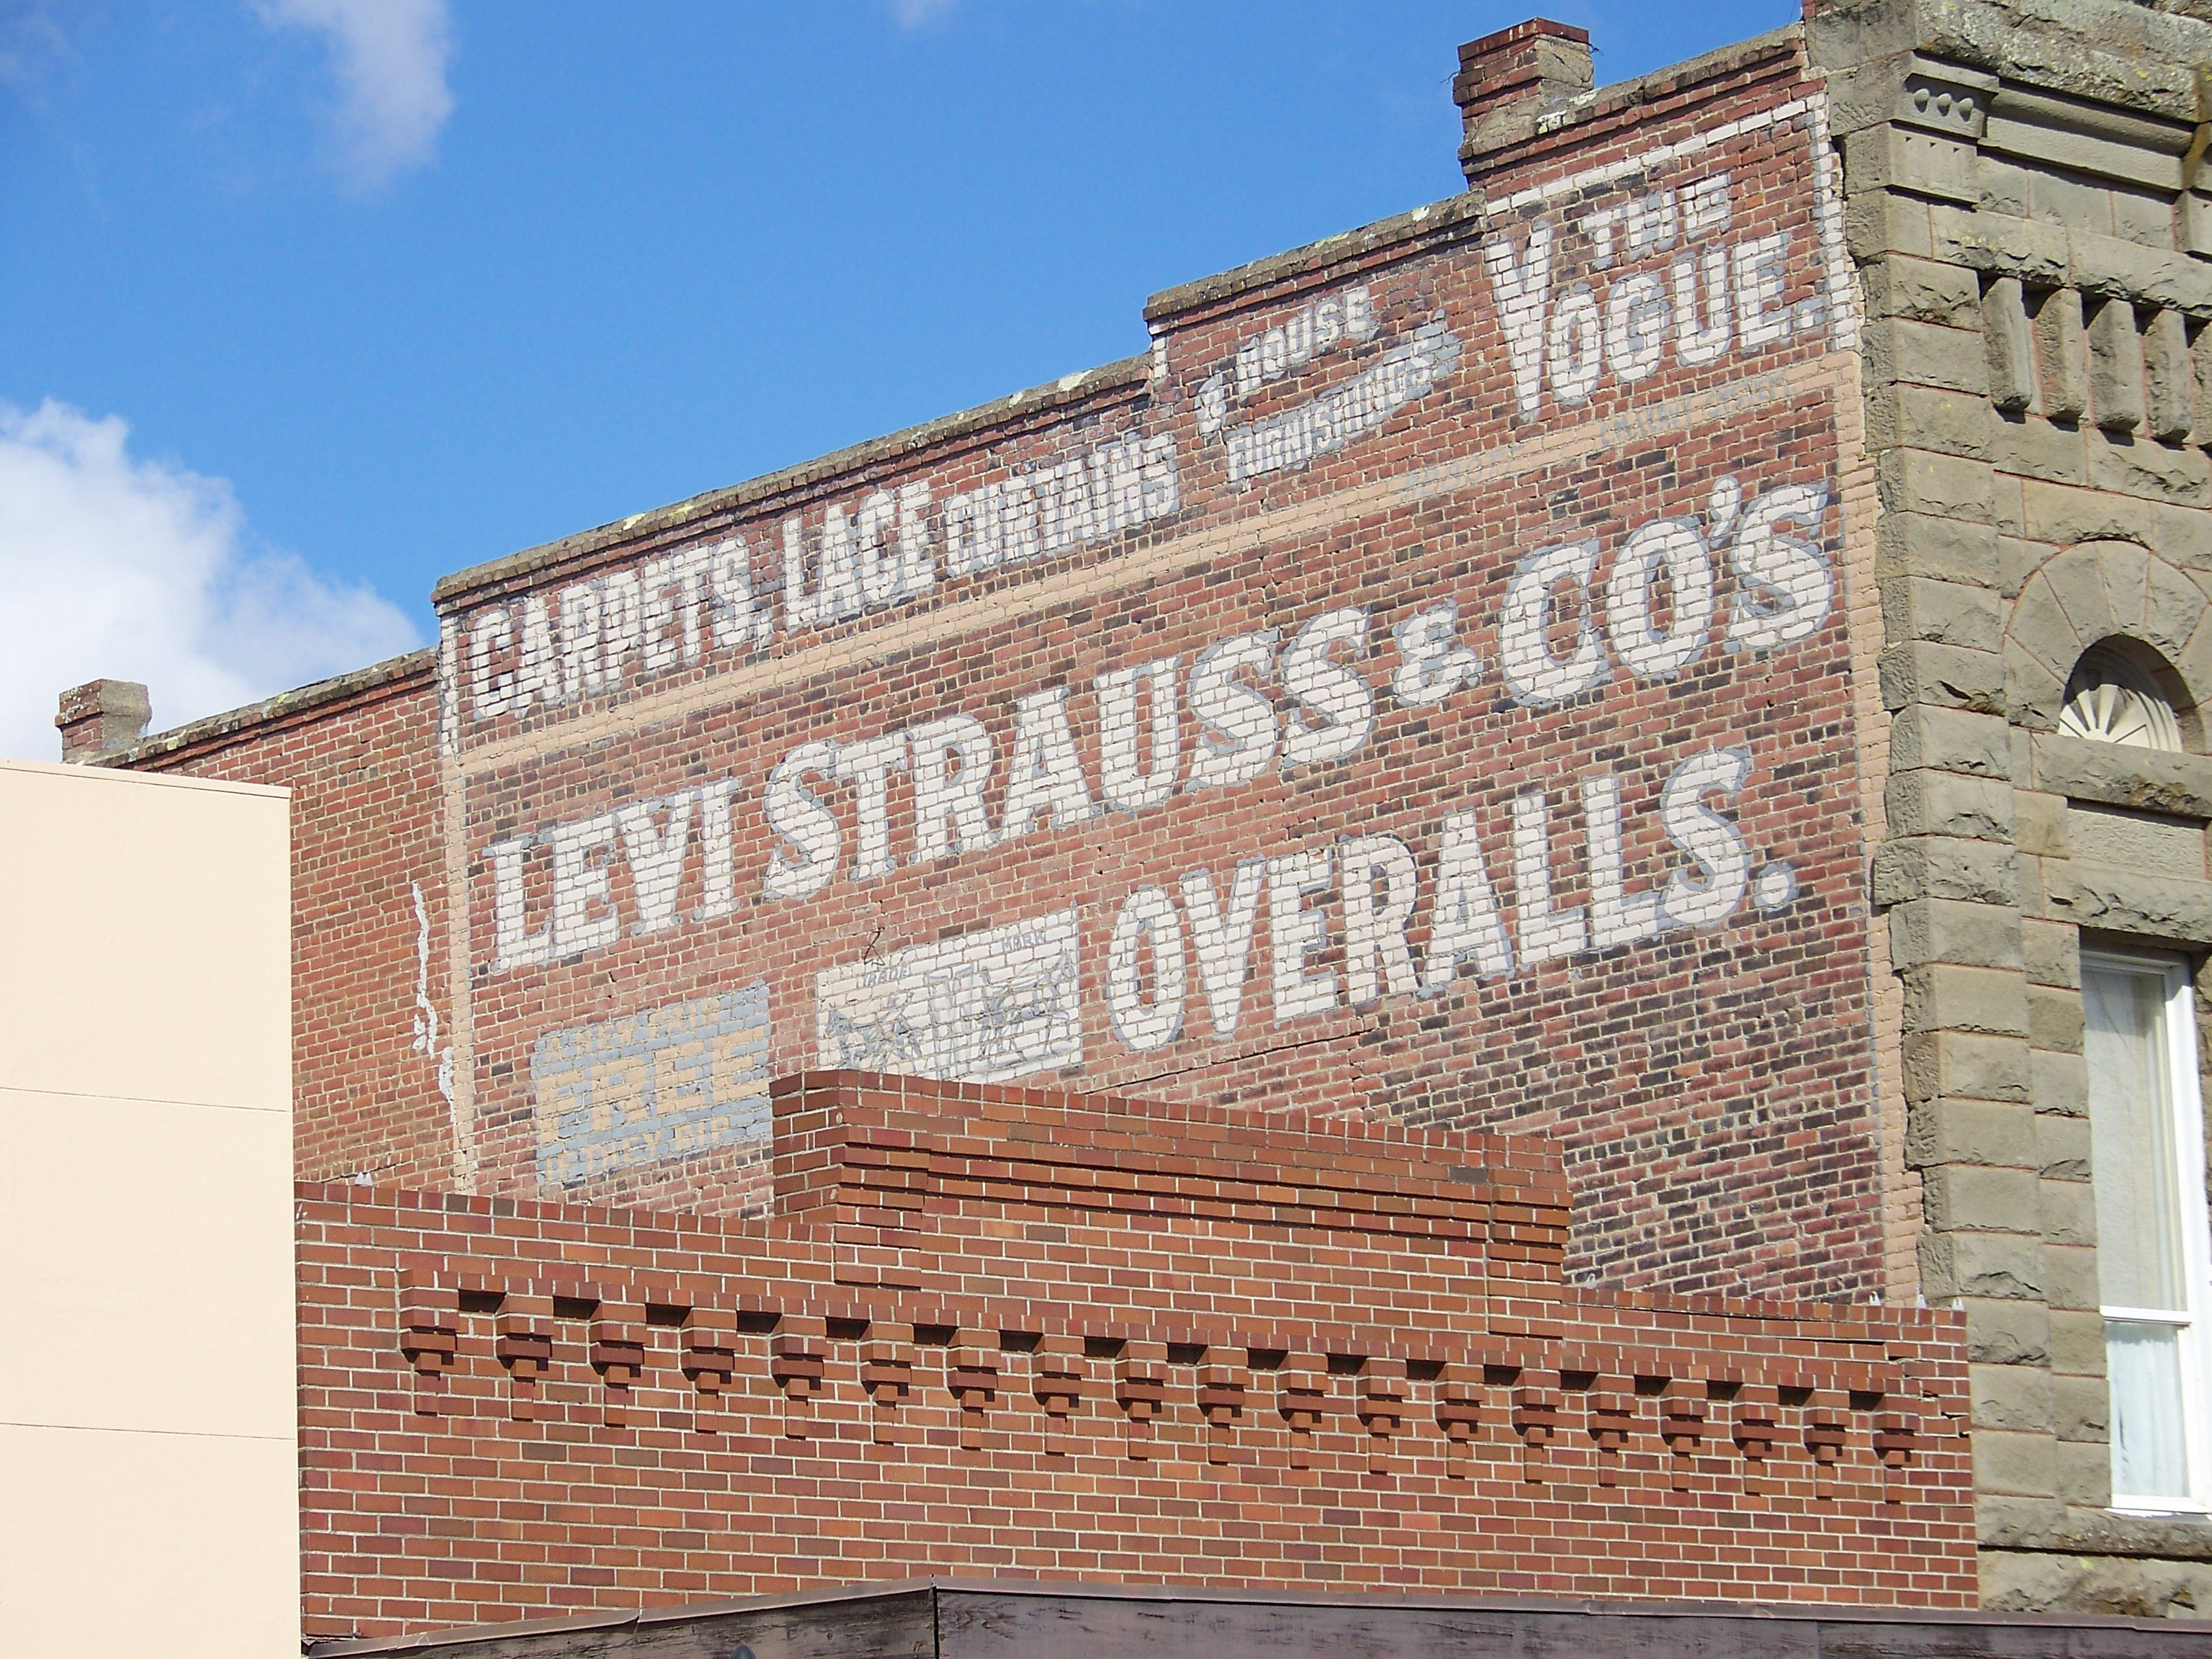 Image of an advertising sign for Levi Strauss & Co. painted on a brick wall; Image credit